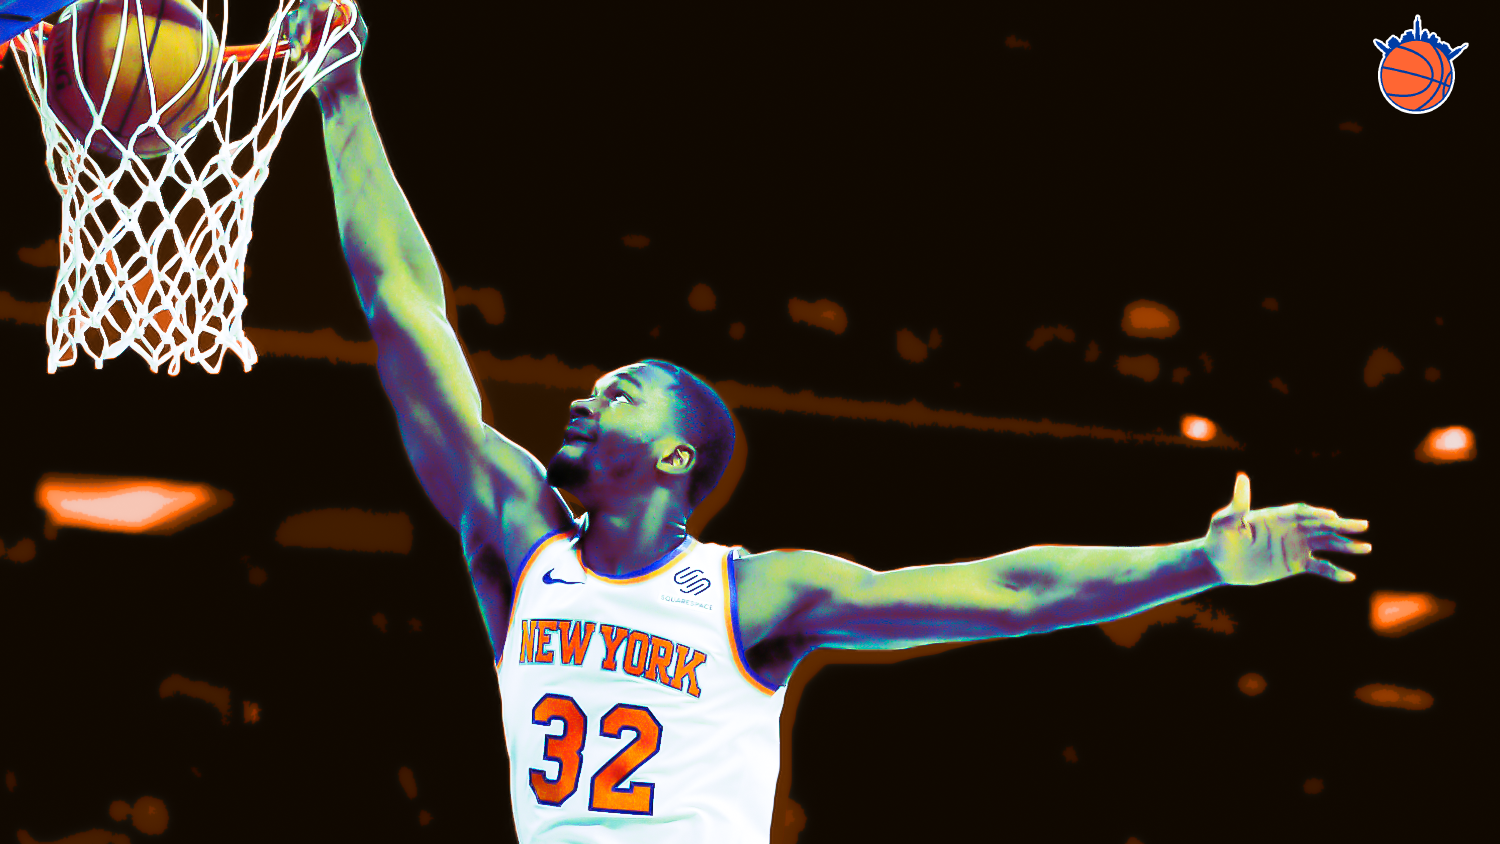 Inspecting Noah Vonleh's Hot Start as a Knick: Positions, Playmaking & Untapped Potential